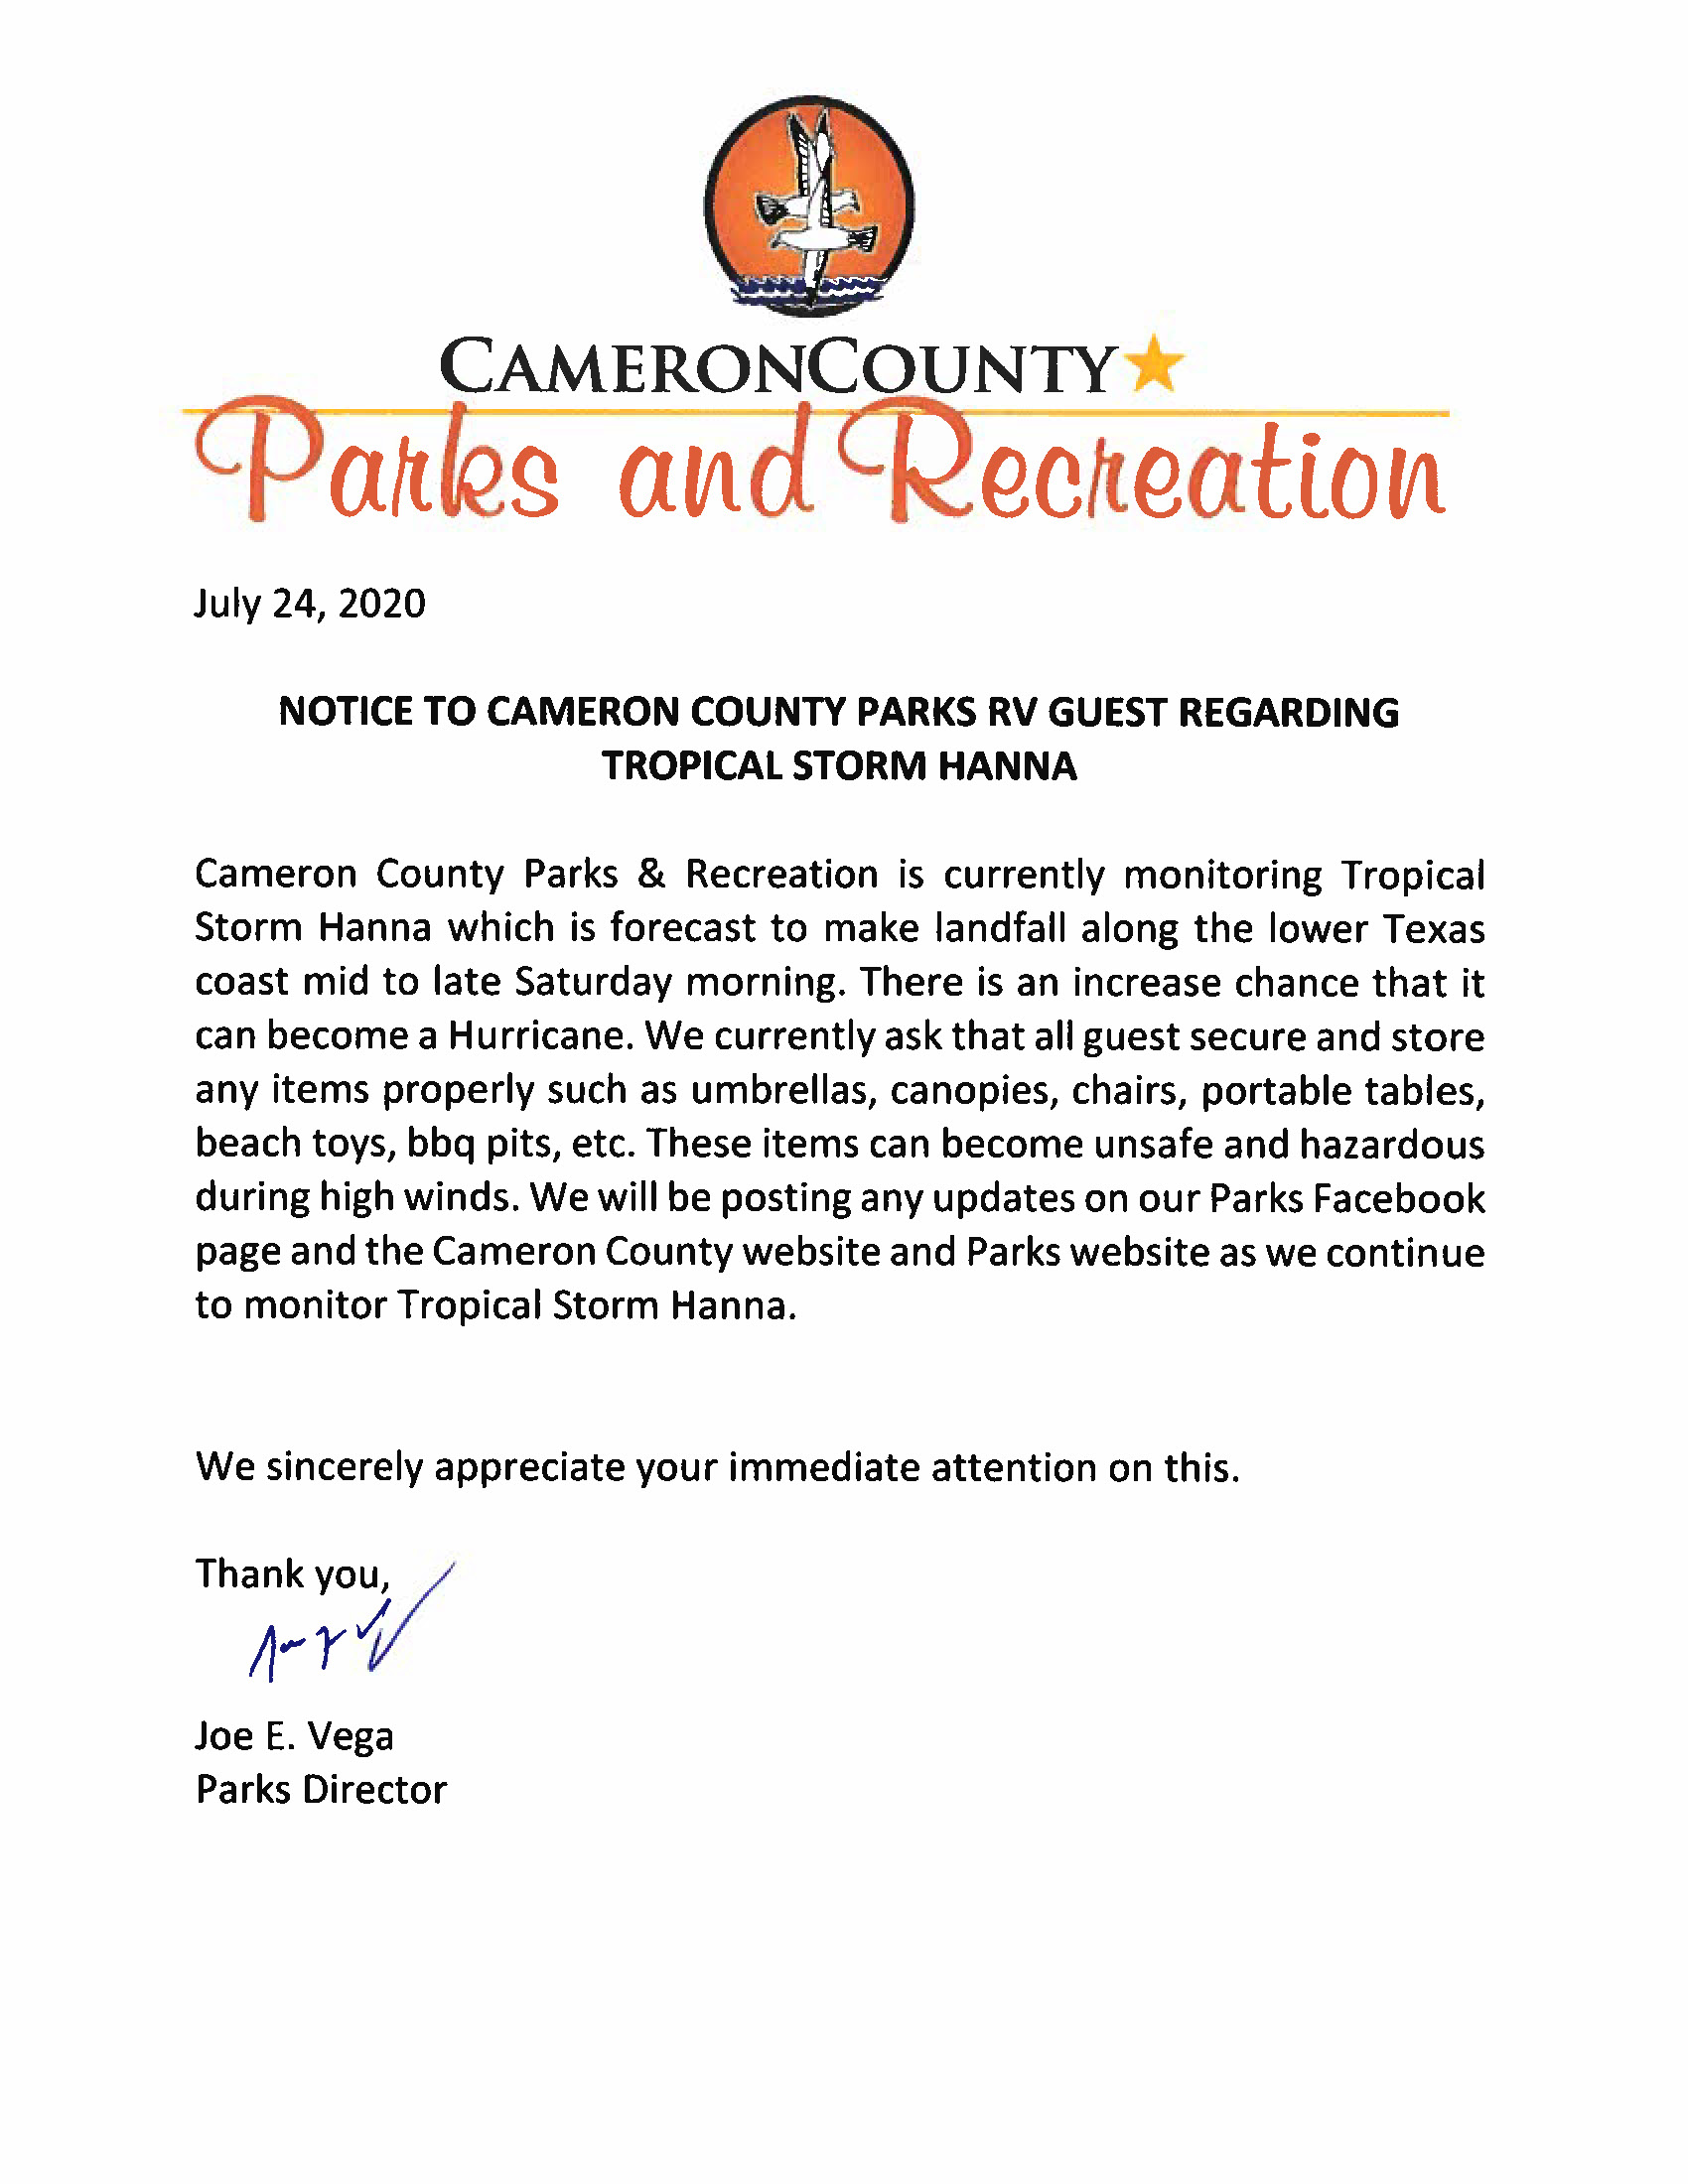 ADVISORY TO ALL CAMERON COUNTY RV PARK GUESTS Tropical Storm Hanna 7 24 20